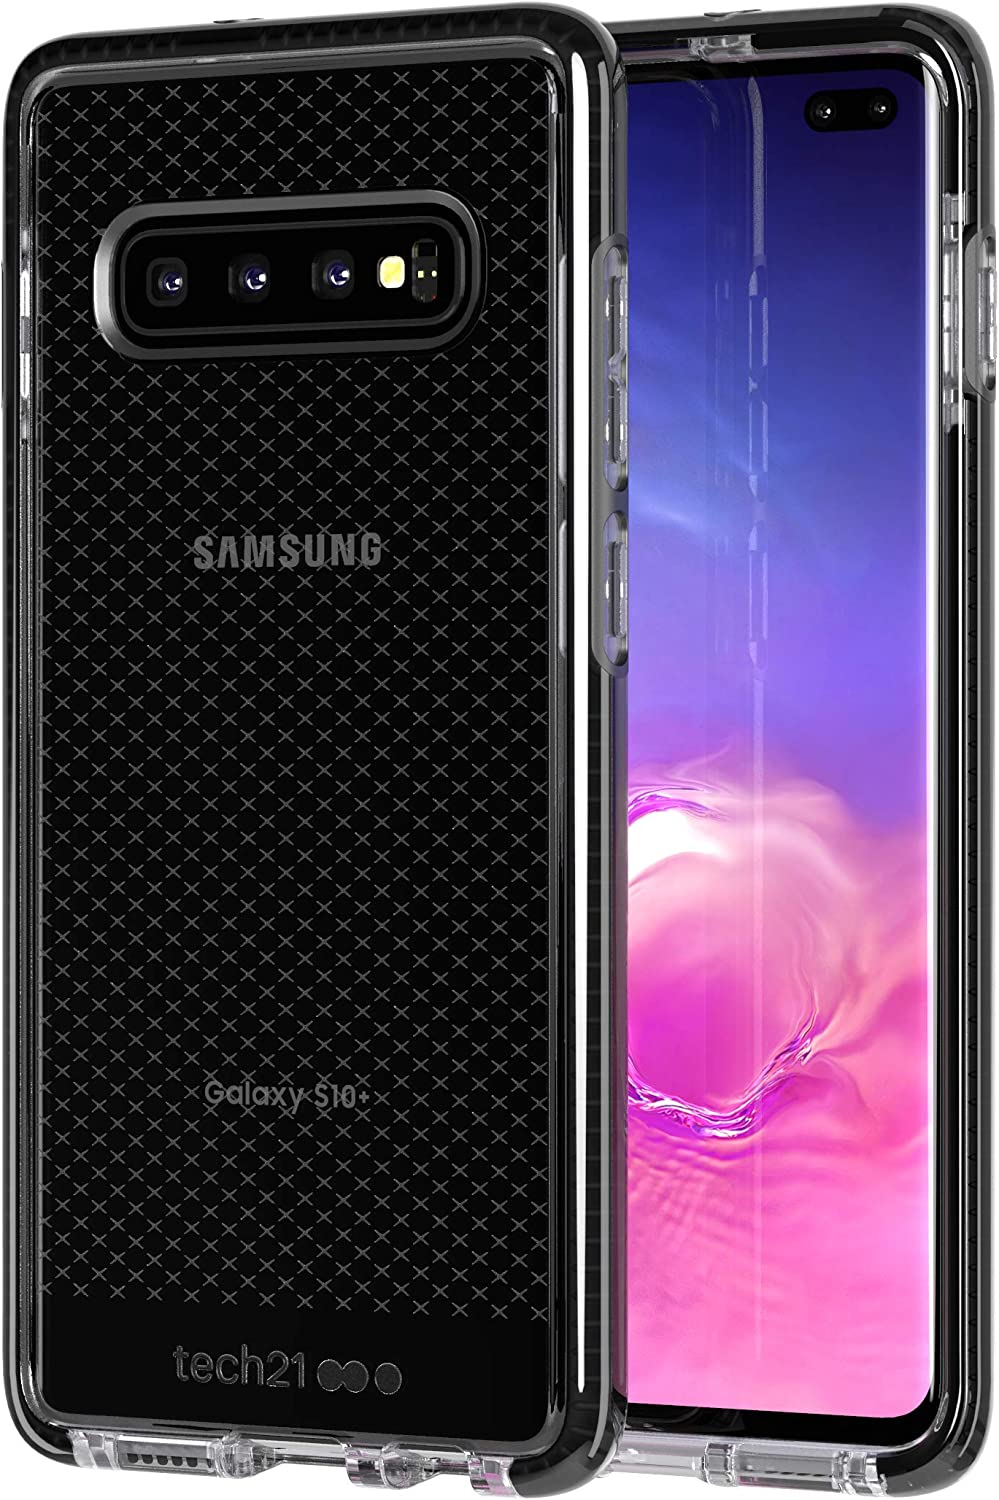 tech21 - Evo Check - for Samsung Galaxy S10+ - Mobile Phone Case with a Unique Check Pattern - Thin and Light Cellphone Case - Phone Casing for Drop Protection of 12FT or 3.6M (Smokey/Black)